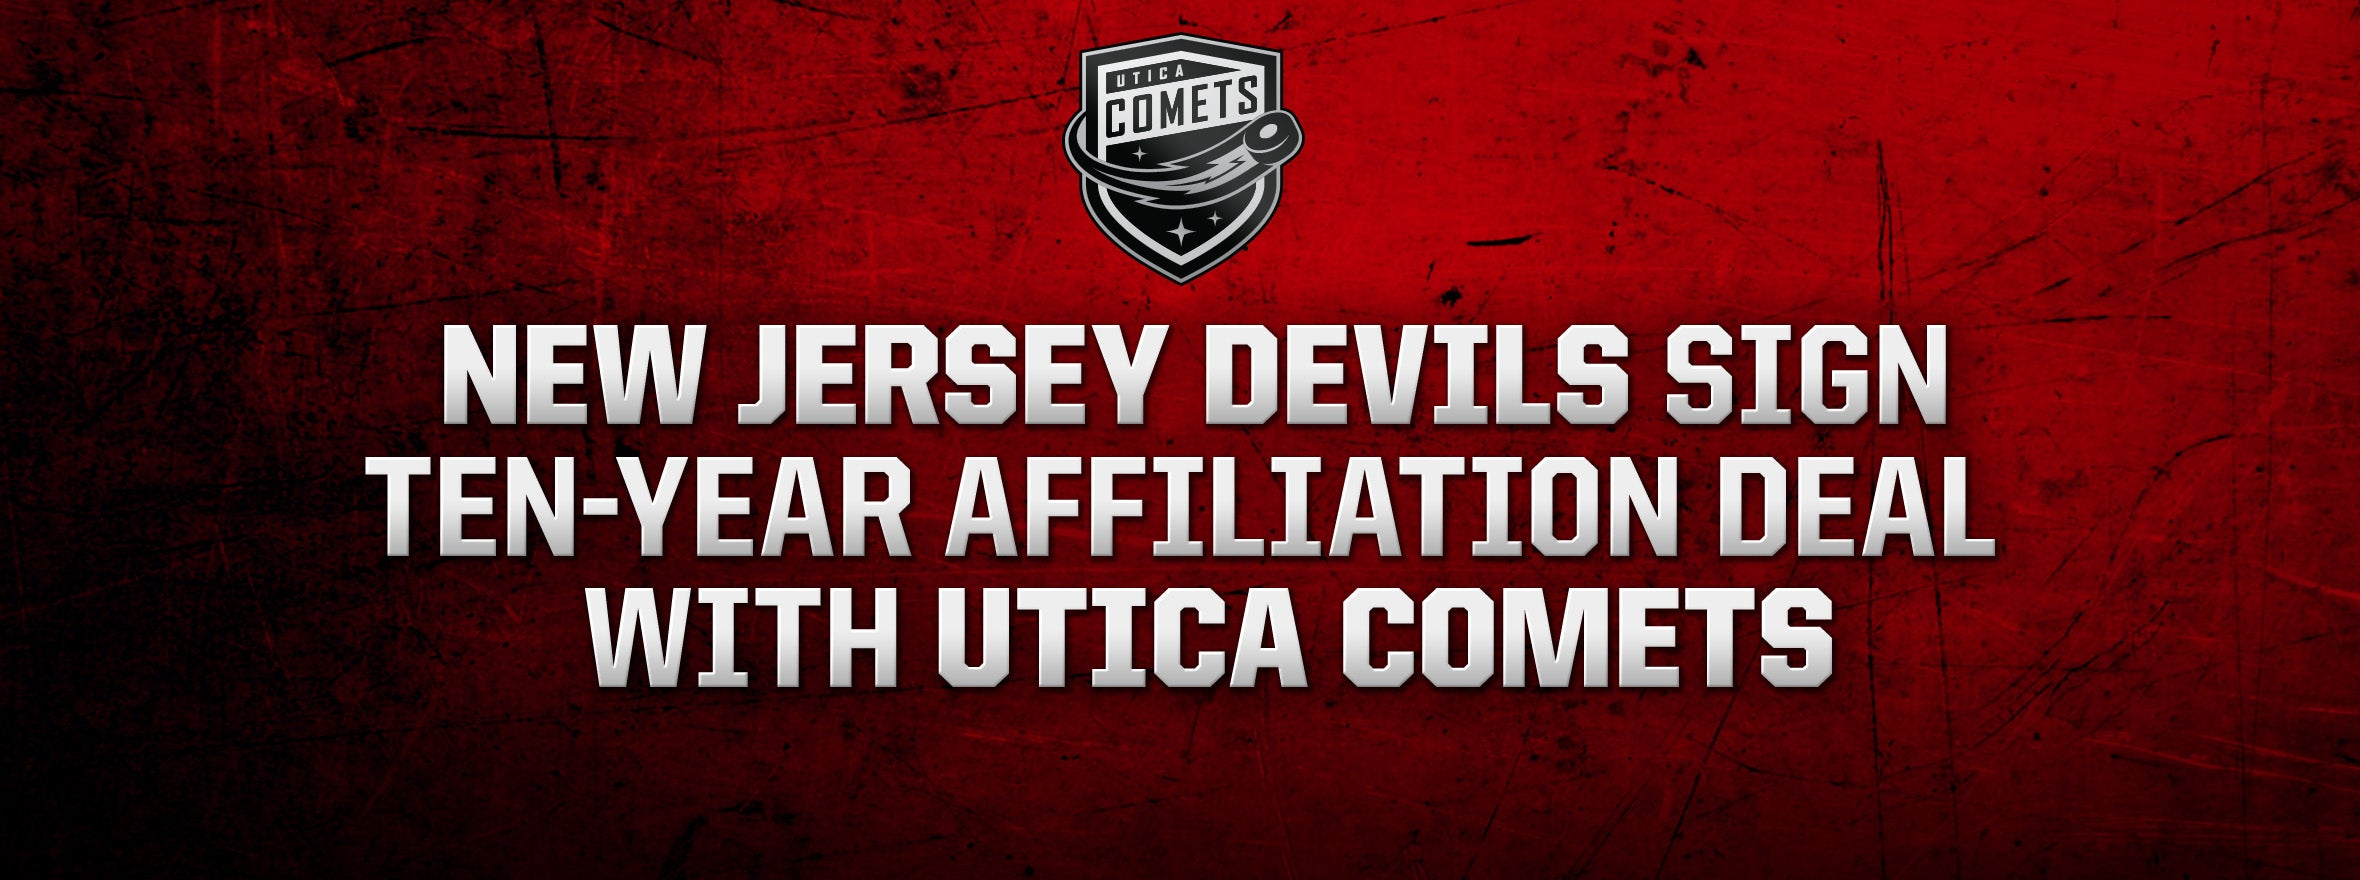 NEW JERSEY DEVILS SIGN TEN-YEAR AFFILIATION DEAL WITH UTICA COMETS